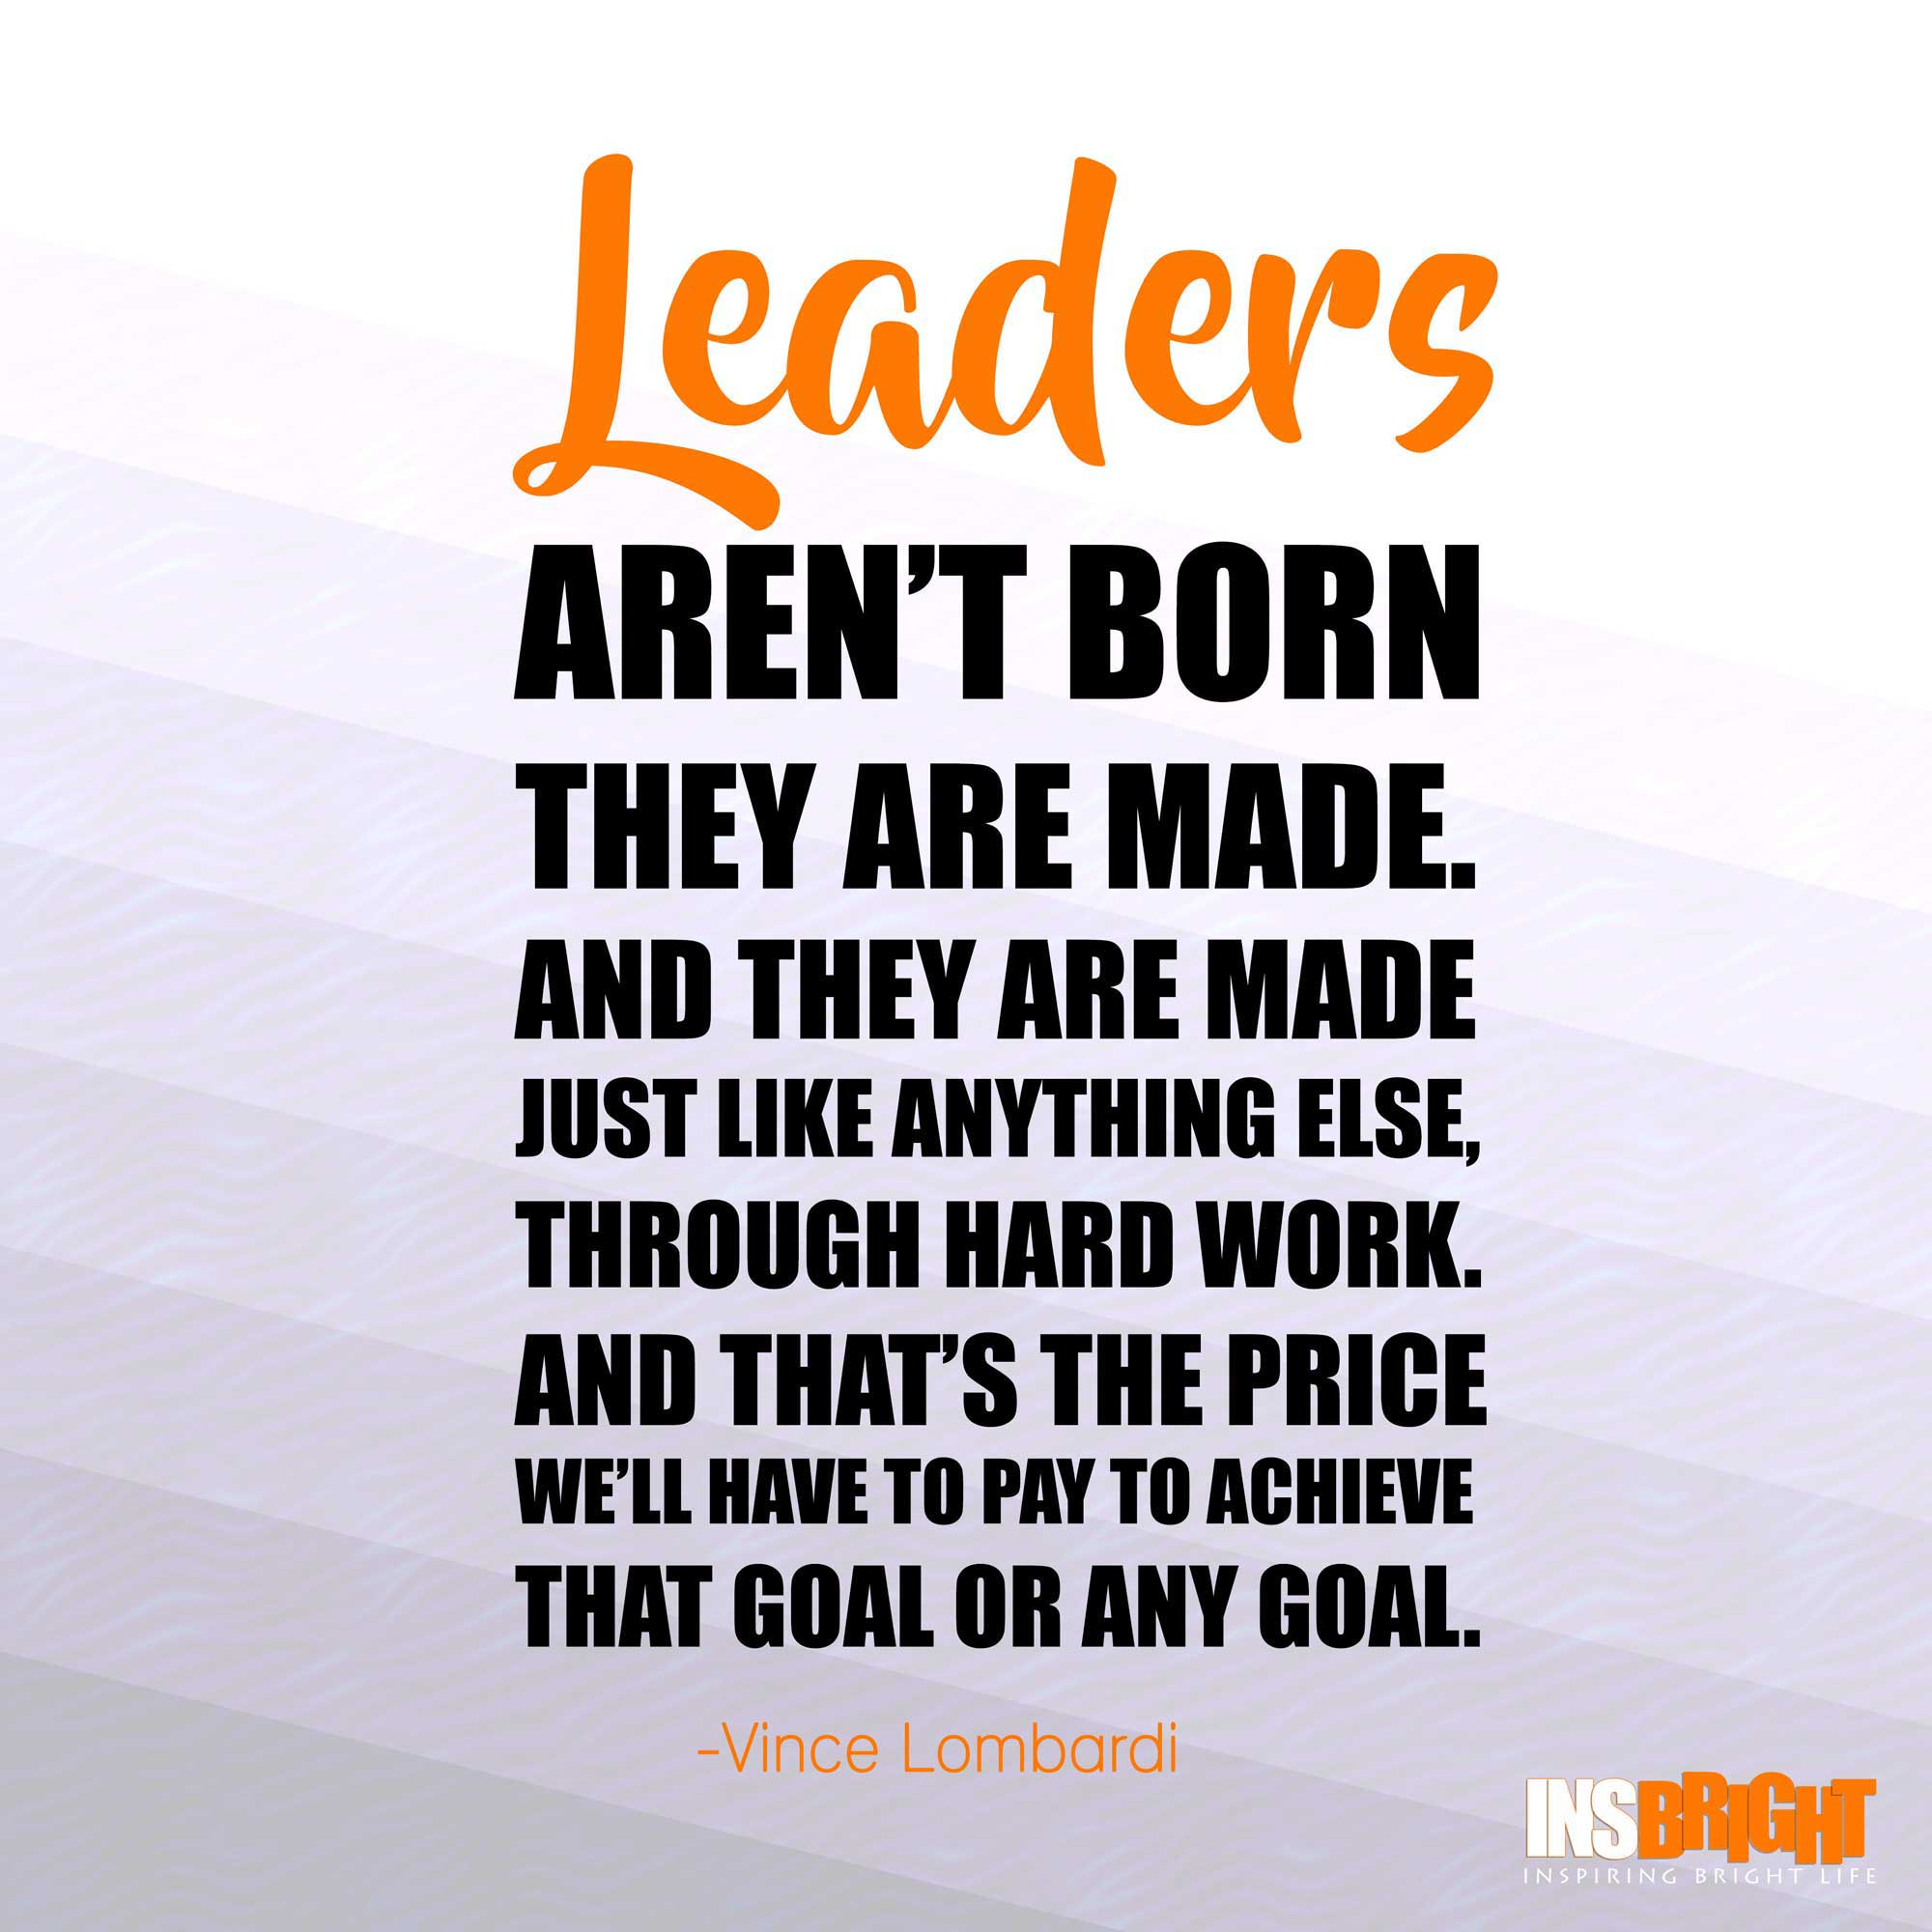 Leadership Quotes For Kids Gorgeous 20 Leadership Quotes For Kids Students And Teachers